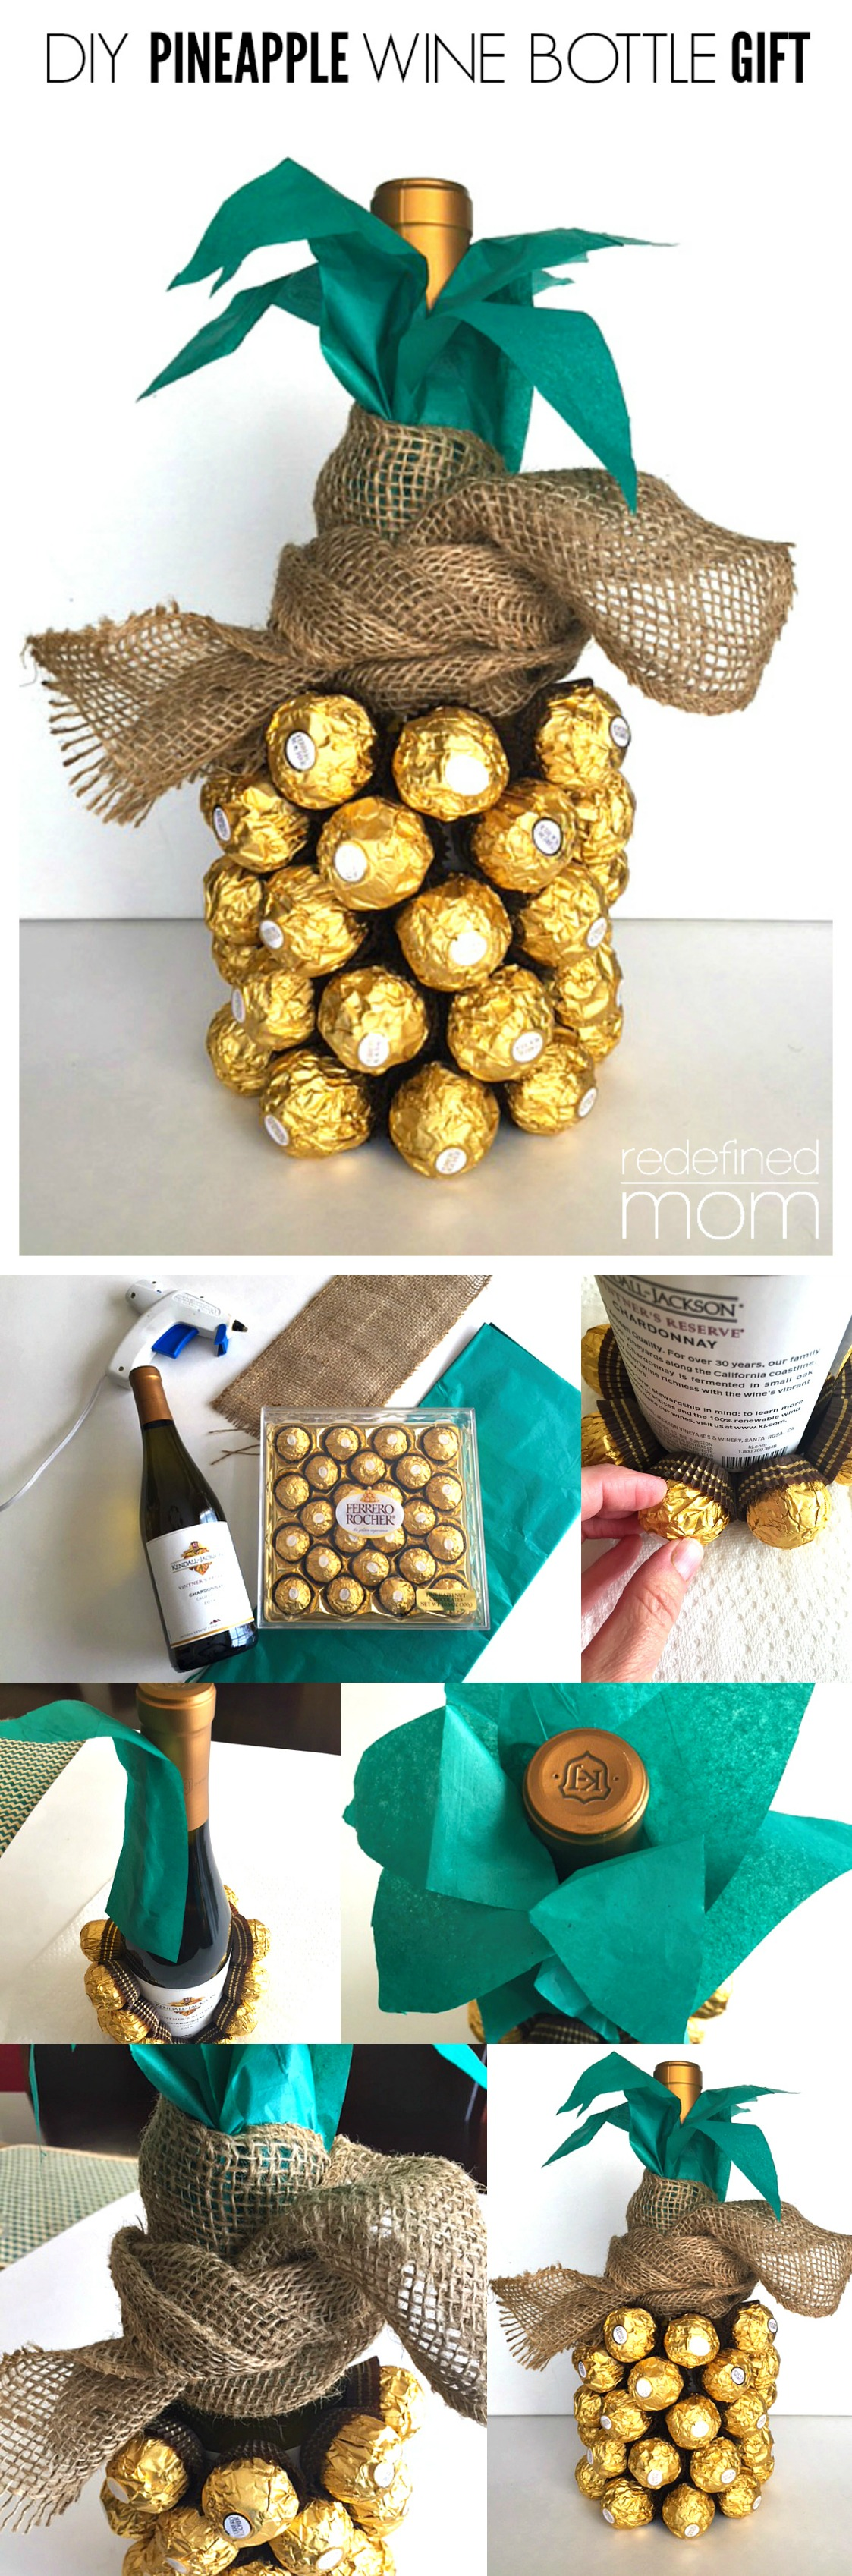 DIY Pineapple Wine Bottle Gift Collage